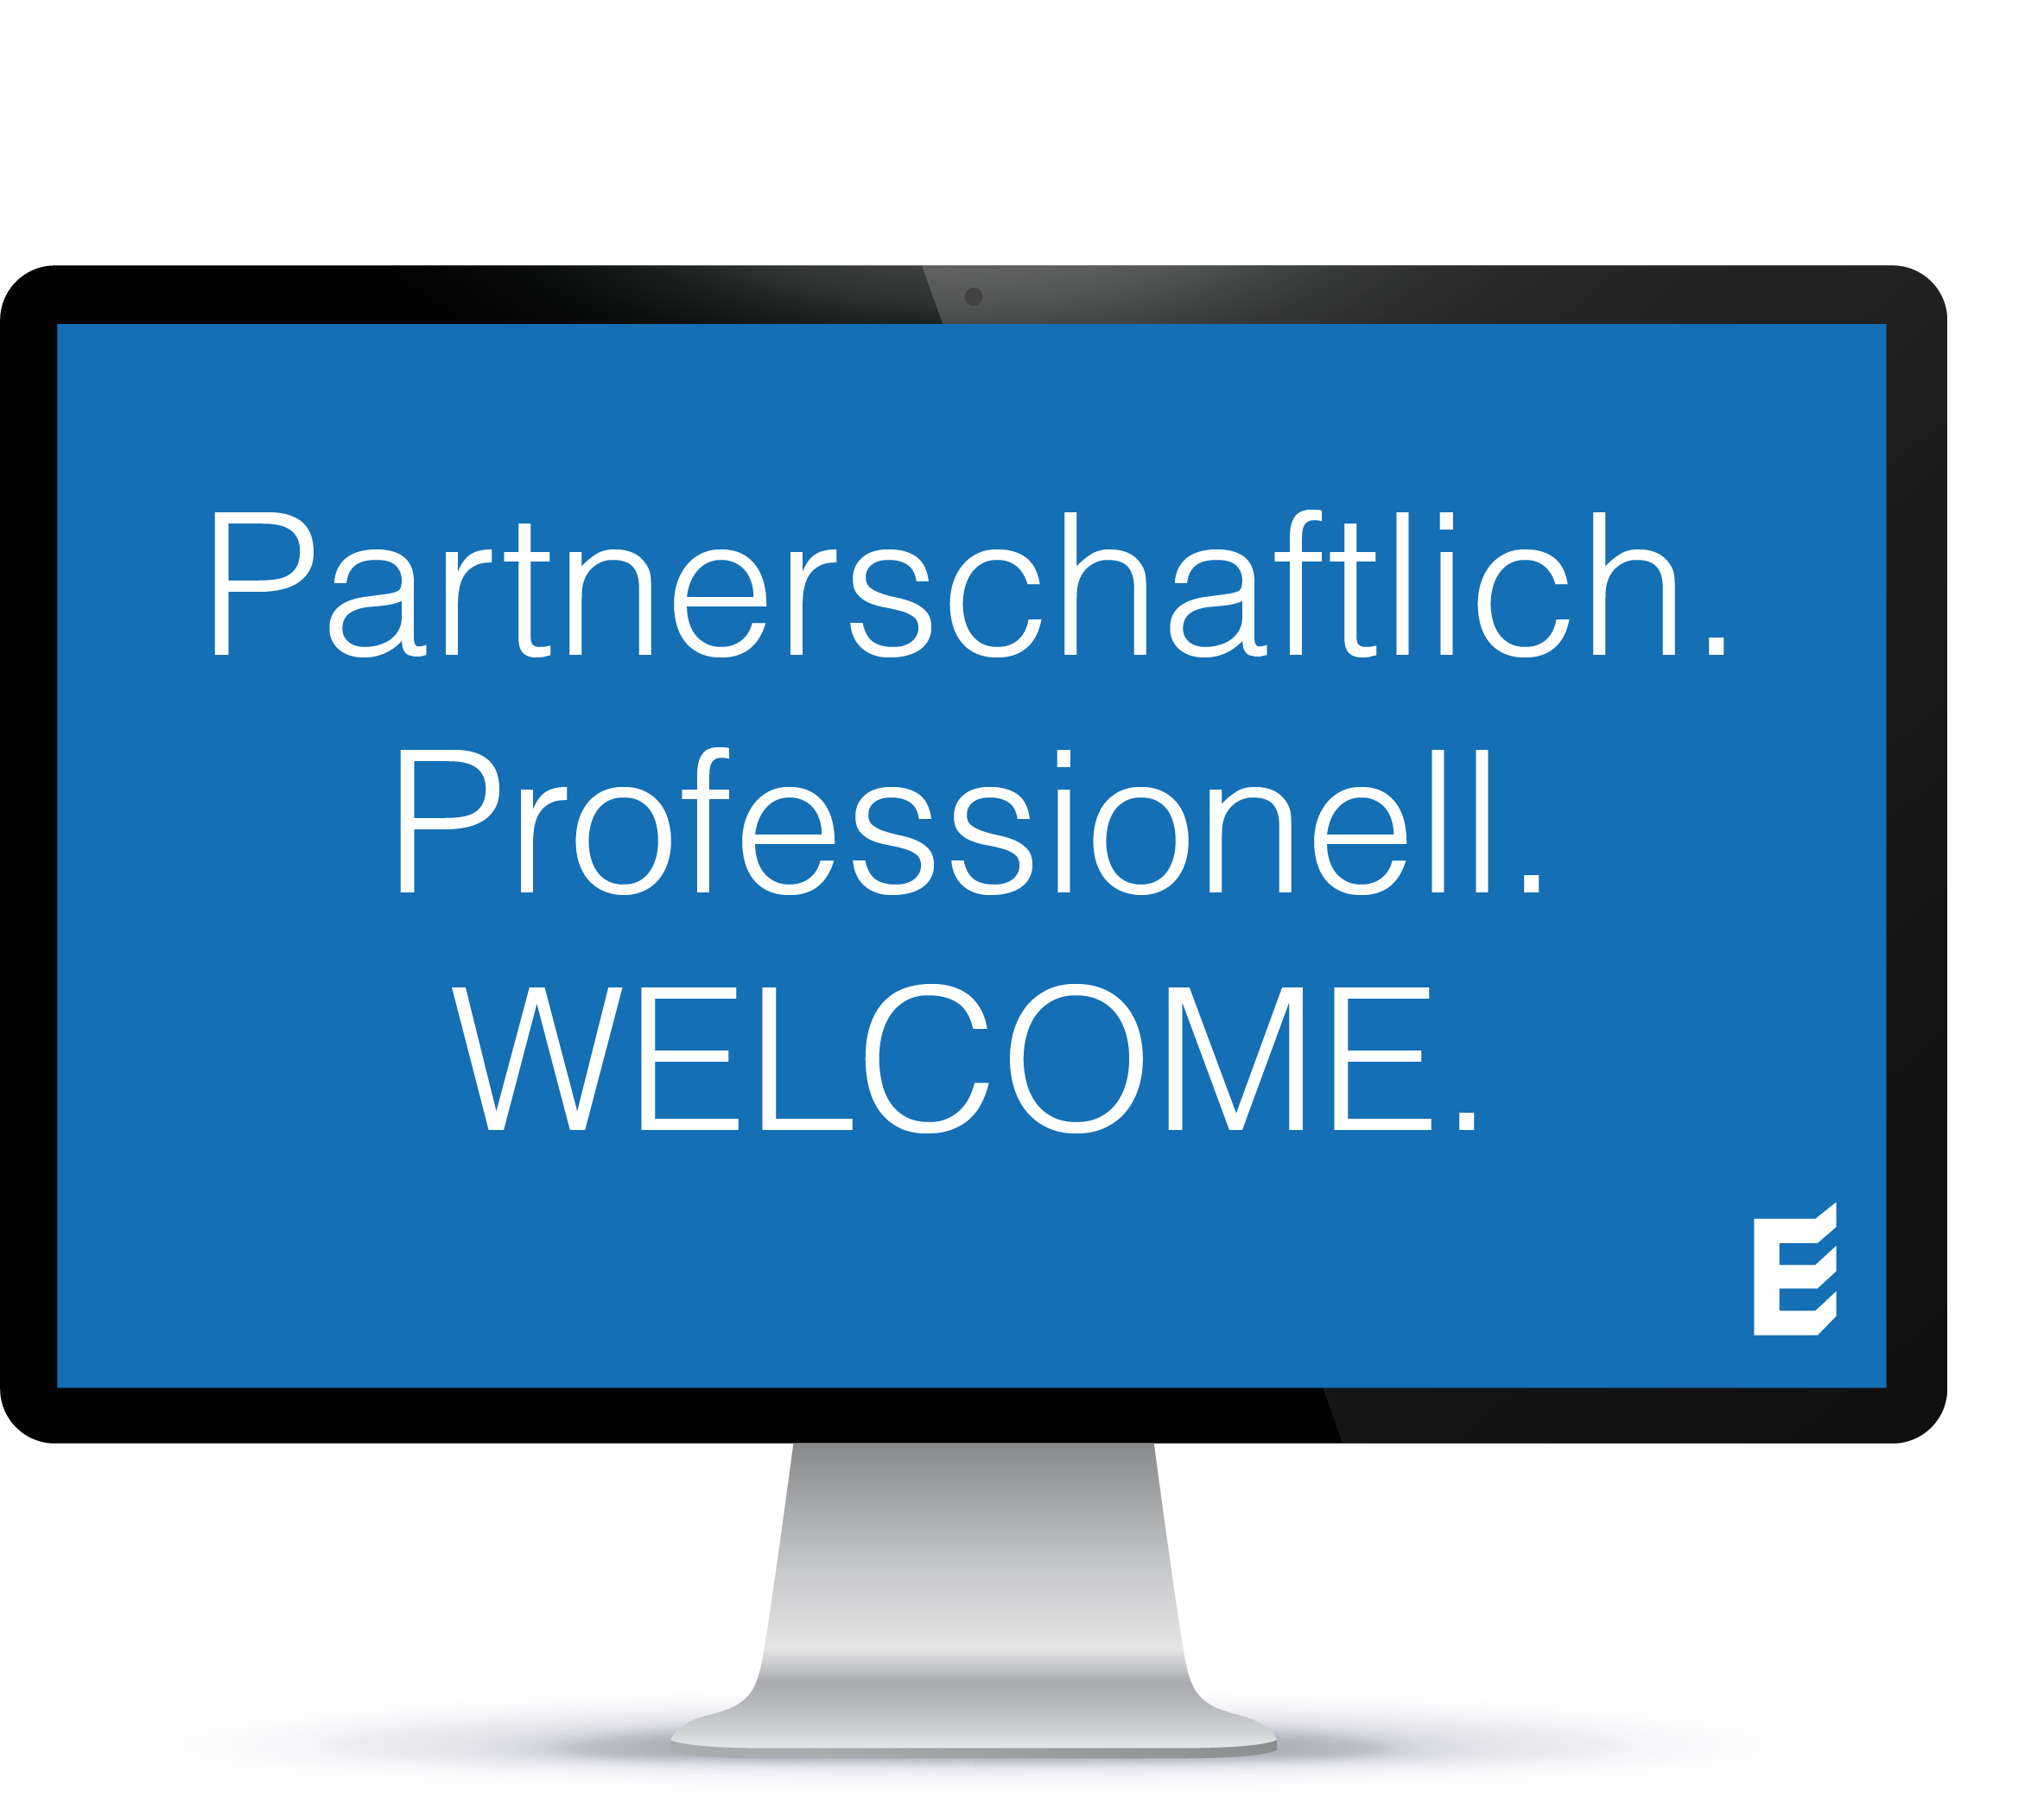 Screen_welcome_Partnerschaftlich_Professionell